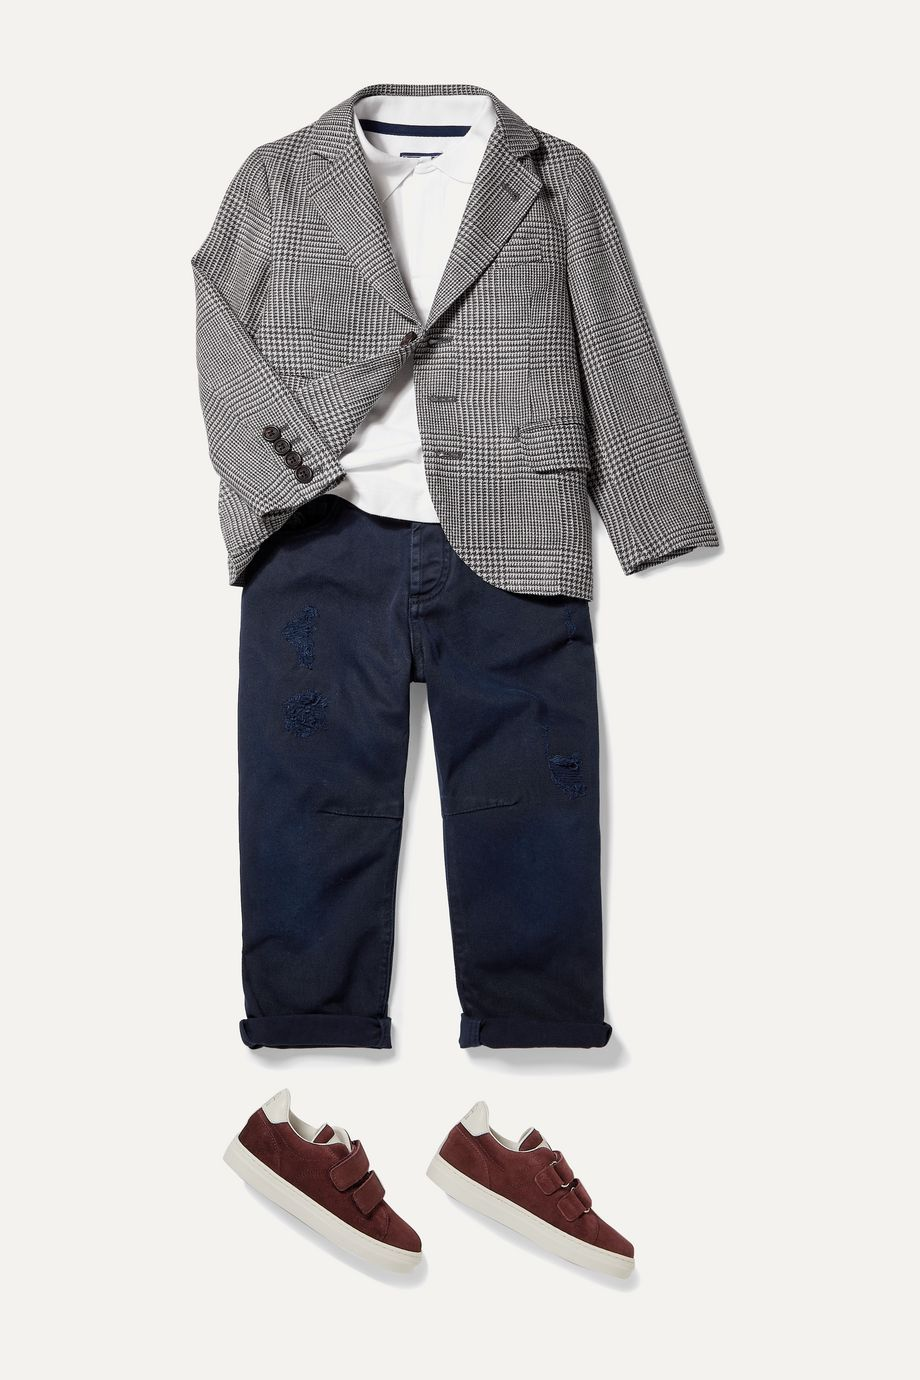 Brunello Cucinelli Kids Ages 4 - 6 Princes of Wales checked wool, linen and silk-blend blazer